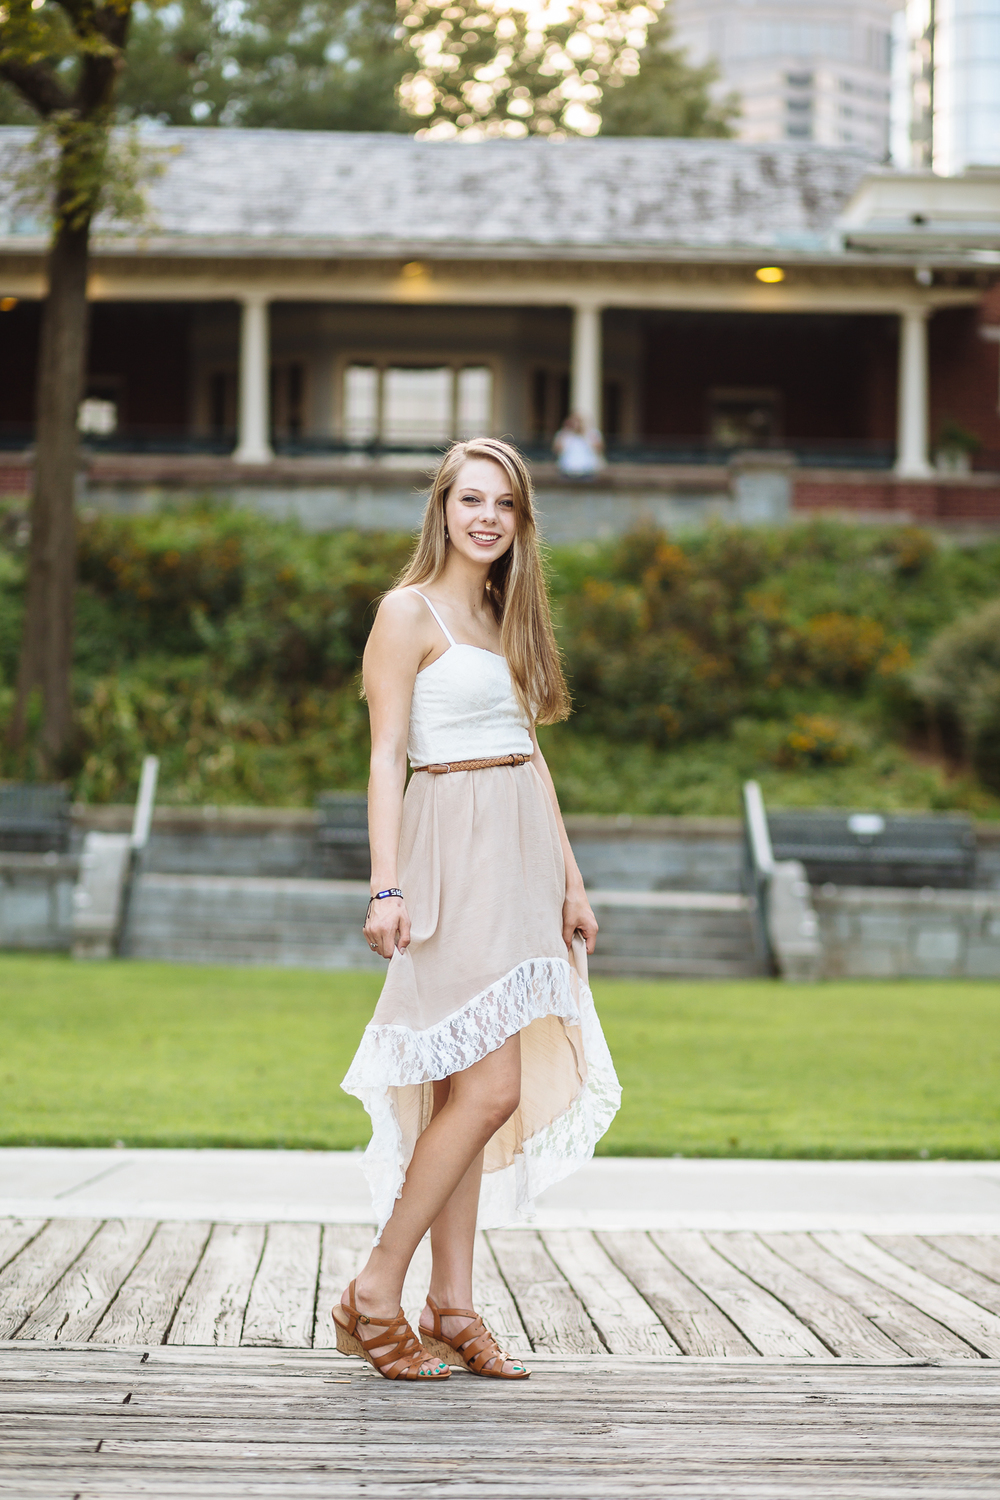 piedmont_park_atlanta_atl_photo_senior_portaits_erin_spruell_photography_31